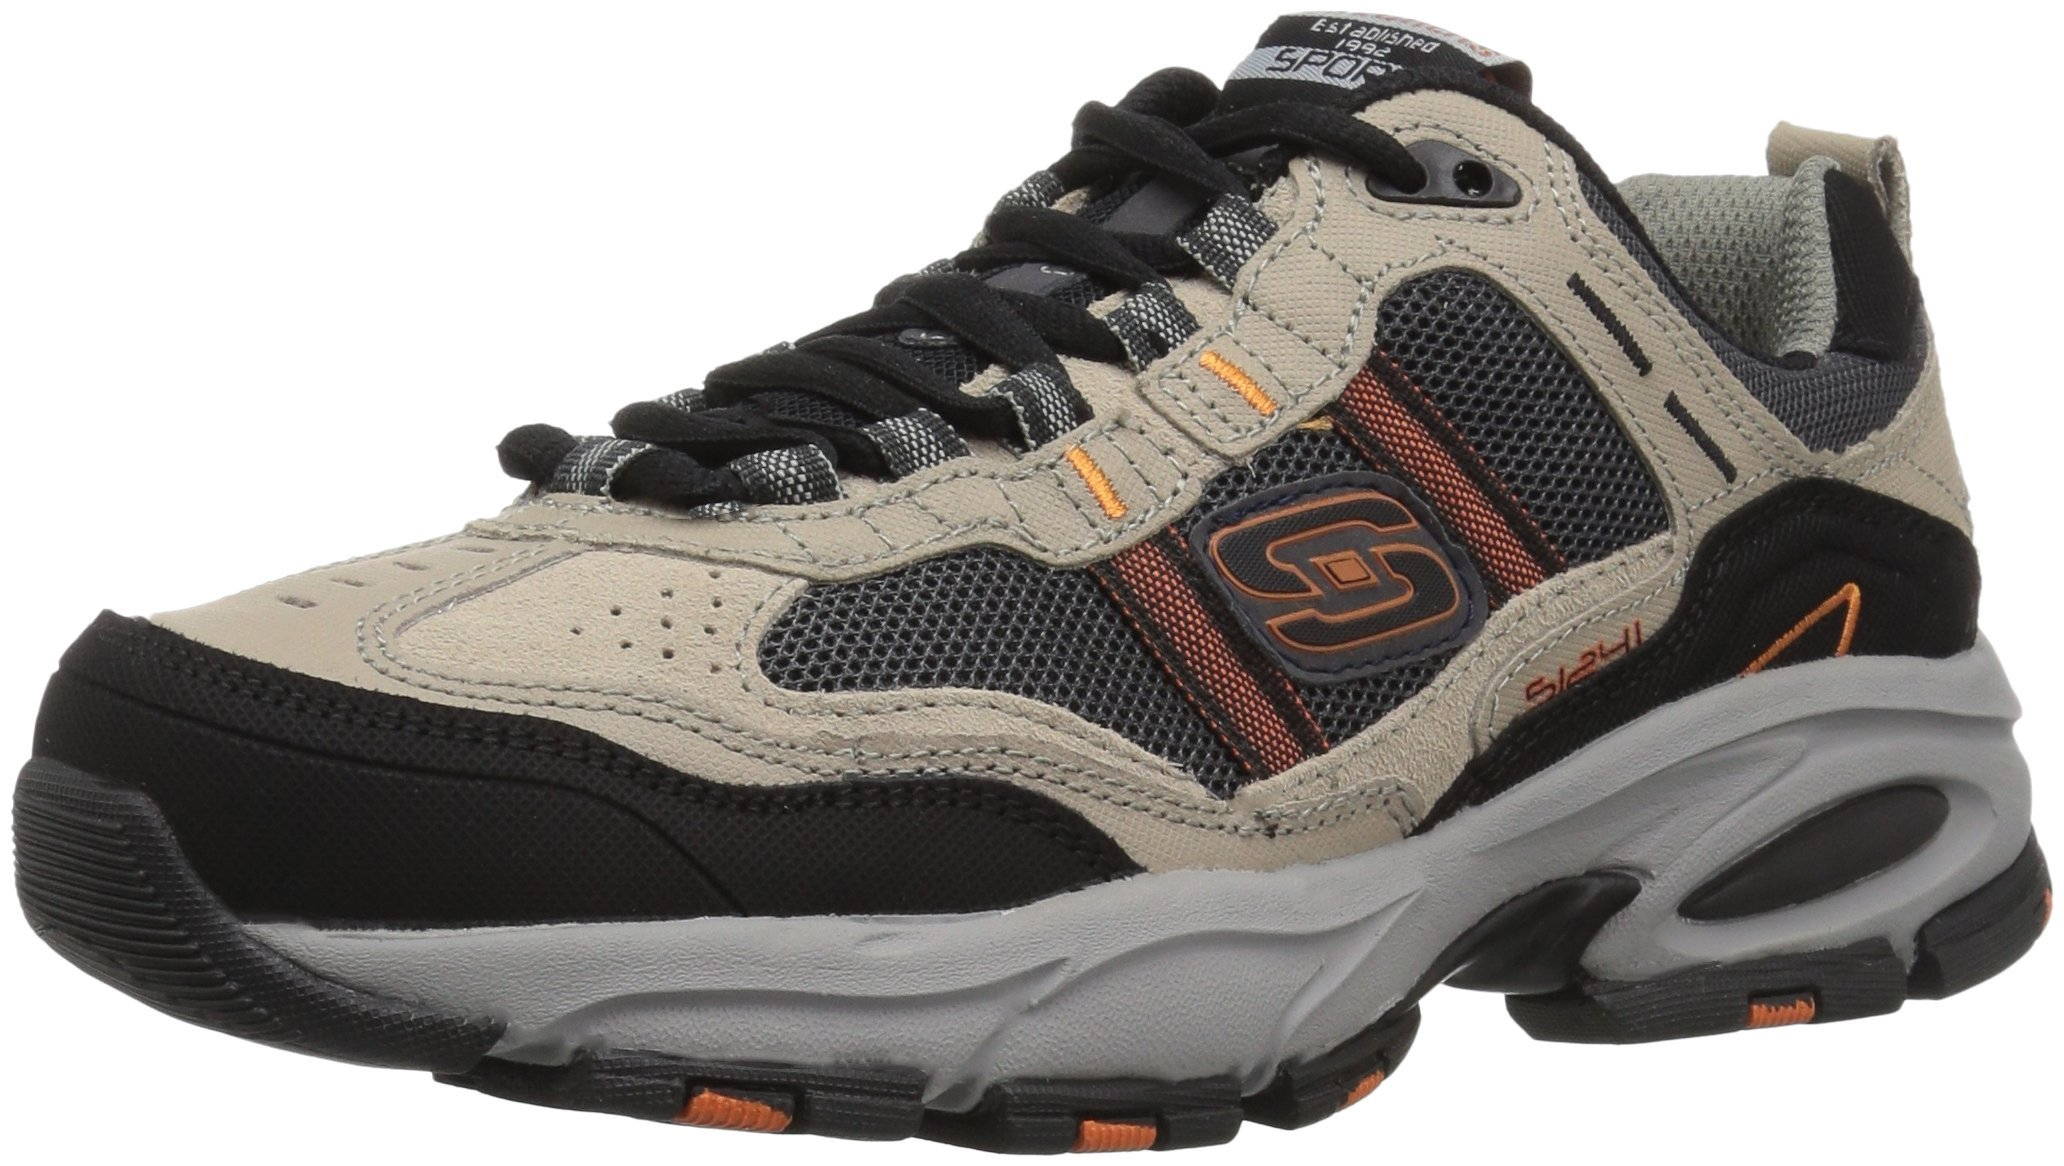 Skechers Sport Men's Vigor 2.0 Trait Memory Foam Sneaker, Taupe/Black, 7 M US by Skechers (Image #1)